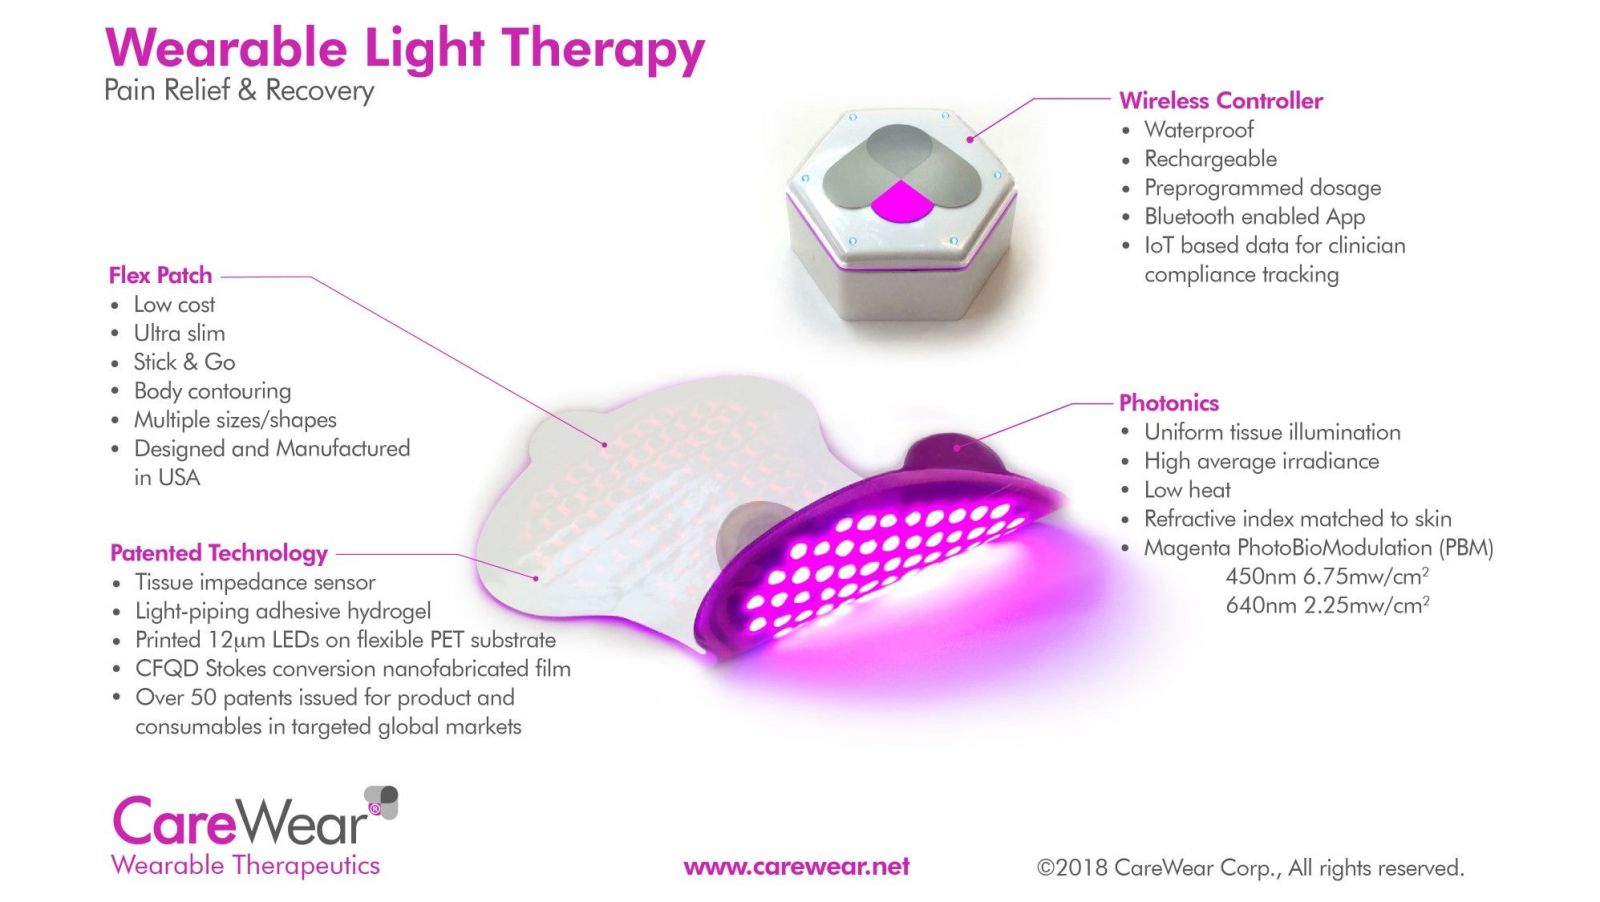 medium resolution of the carewear light patch features award winning patented technology using printed leds integrated into ultra slim adhesive hydrogel patches with over 5000